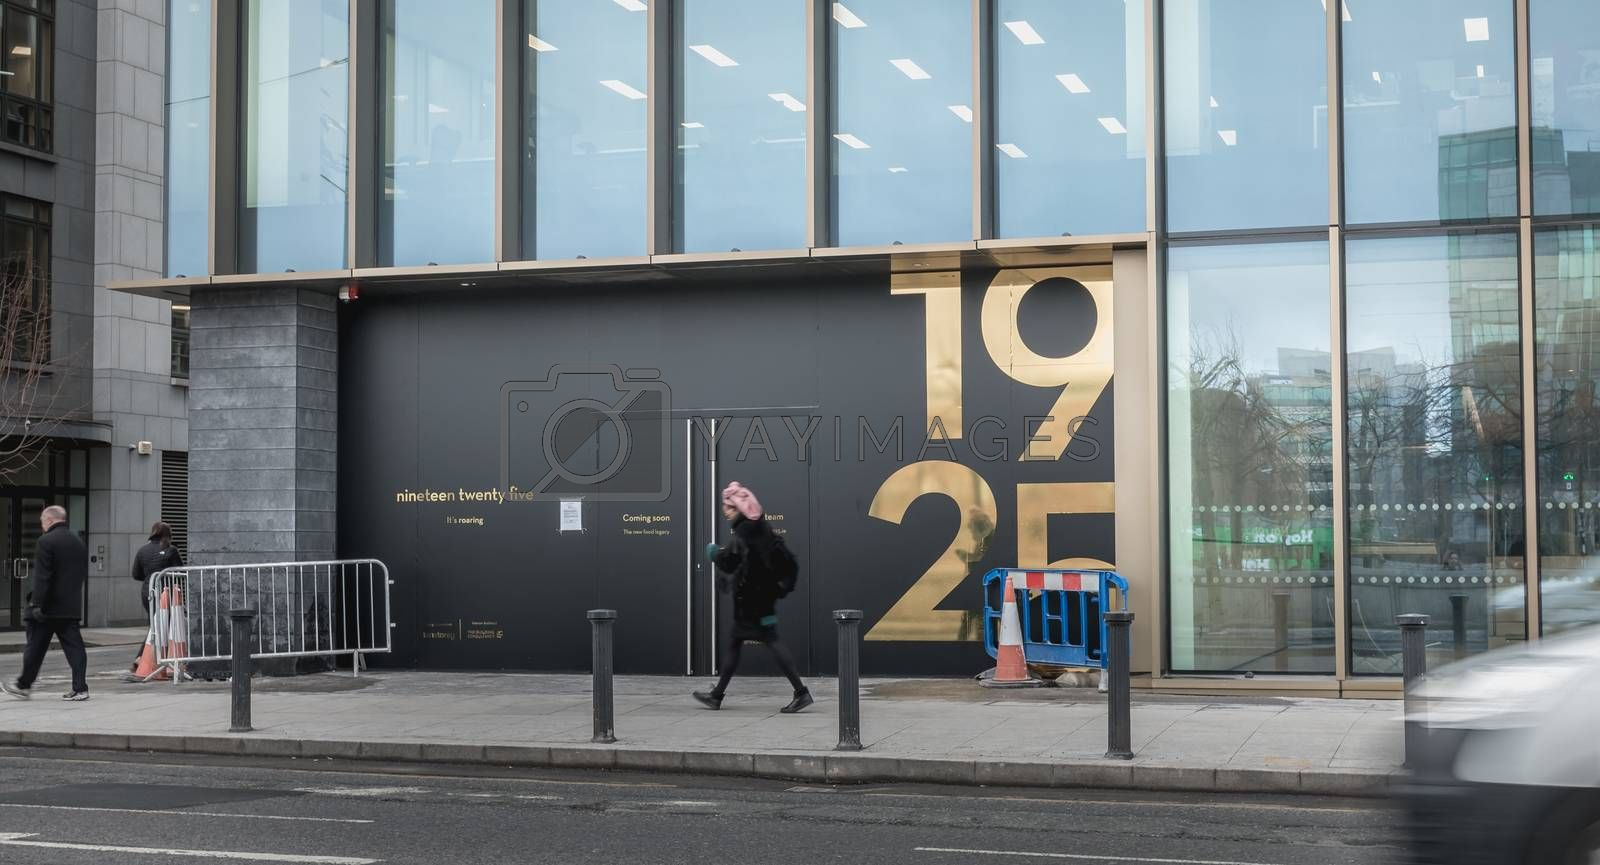 Dublin, Ireland - February 12, 2019: People walking past the famous 1925 restaurant during its renovations on a winter day